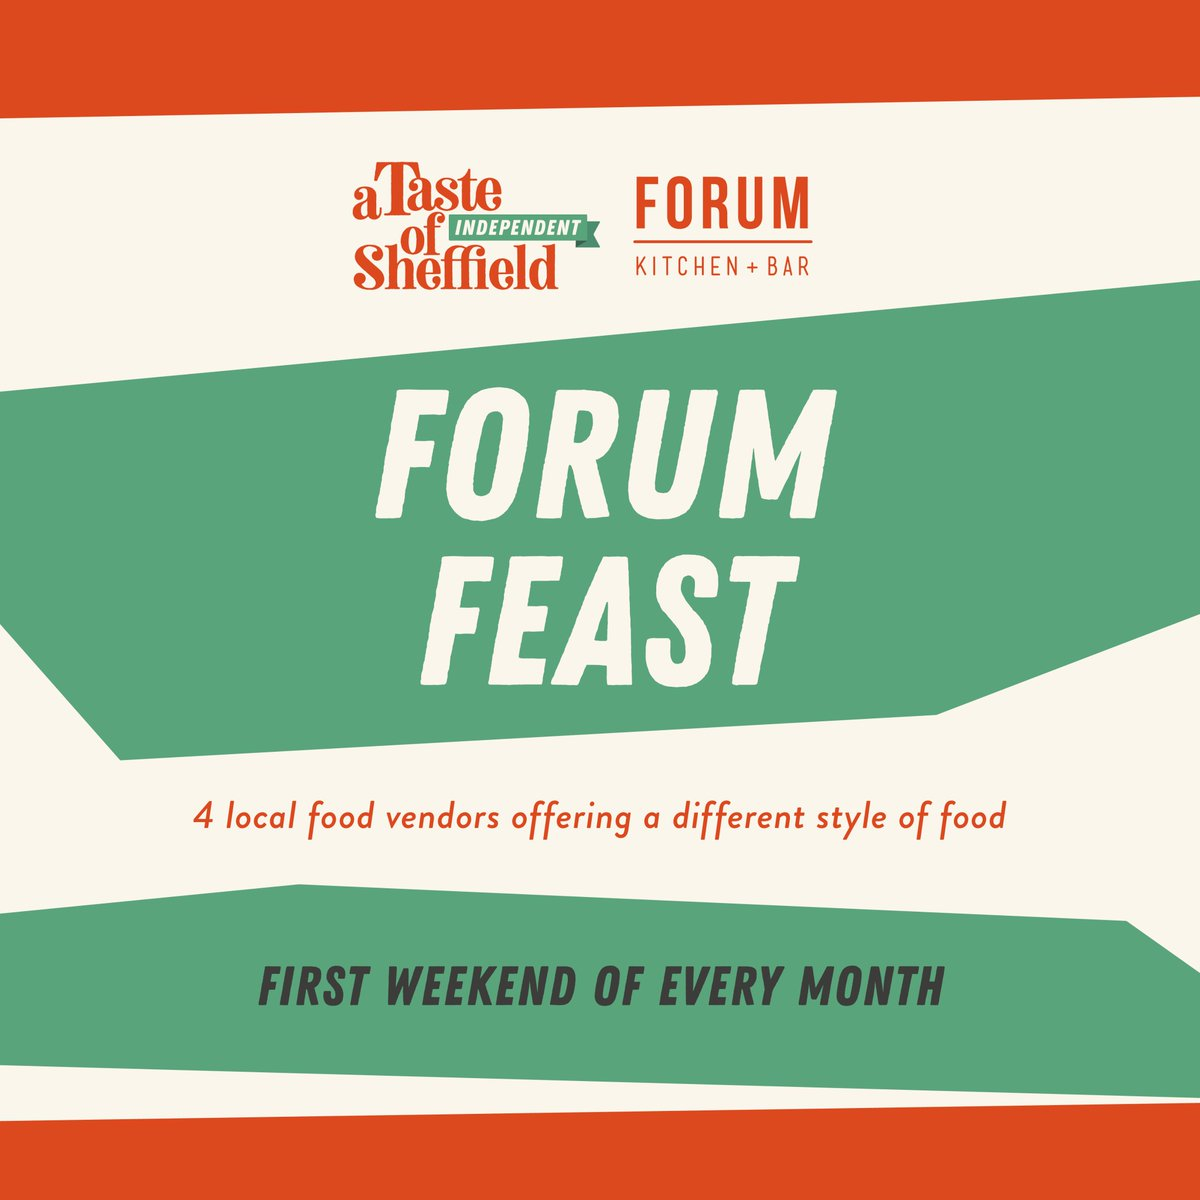 Forum Feast hitting our terrace this weekend!